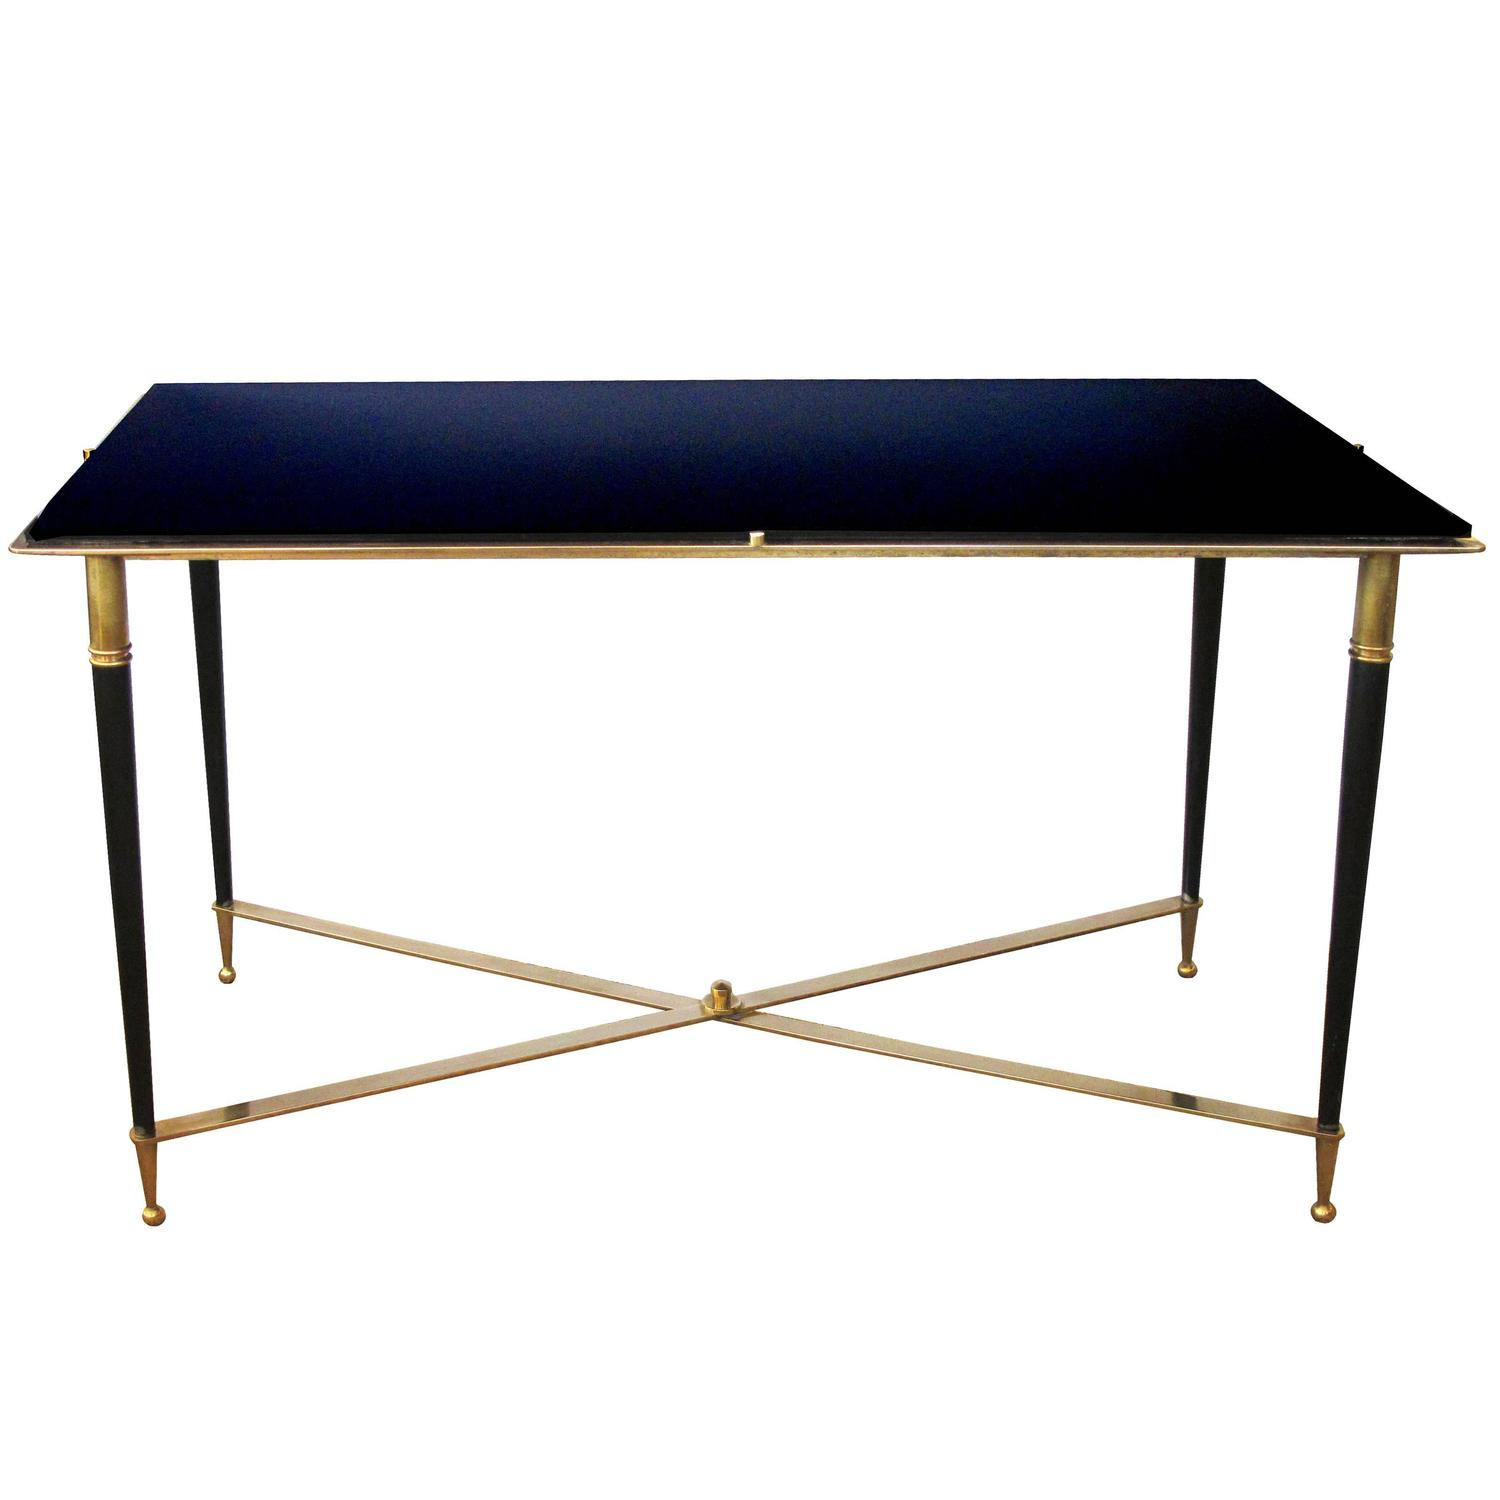 chic french rectangular brass and metal cocktail table with black glass top at 1stdibs. Black Bedroom Furniture Sets. Home Design Ideas